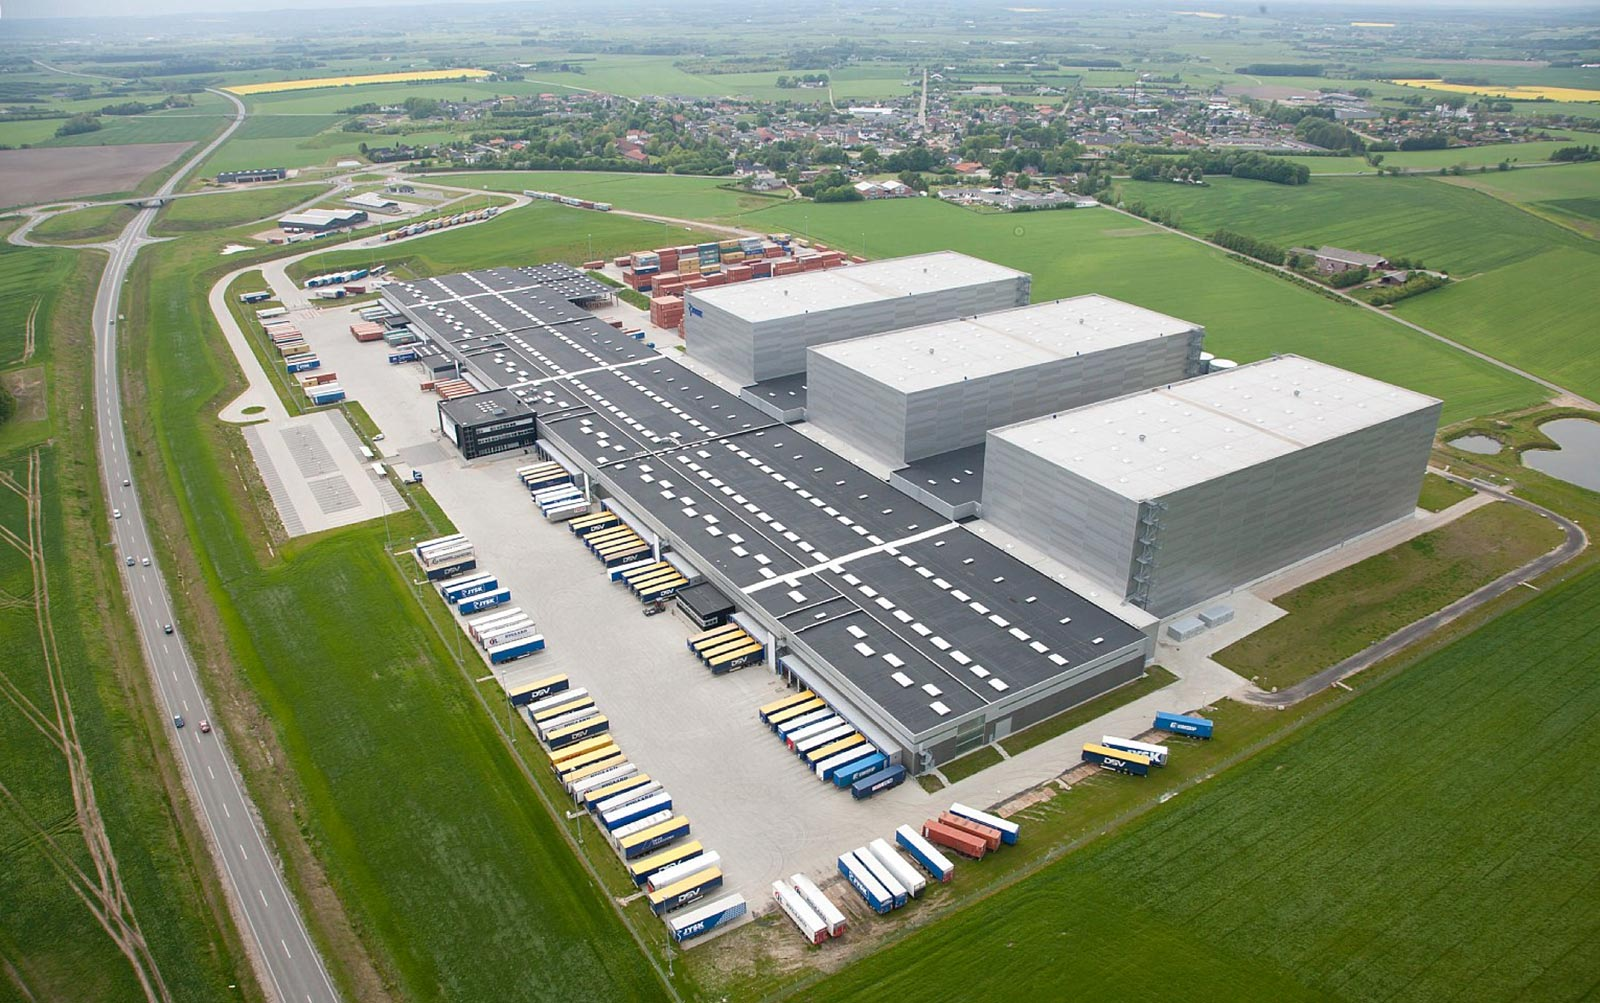 JYSK Uldum - Distribution centre - JYSK's new 64,000 m2 distribution centre is attractively situated in the open countryside.